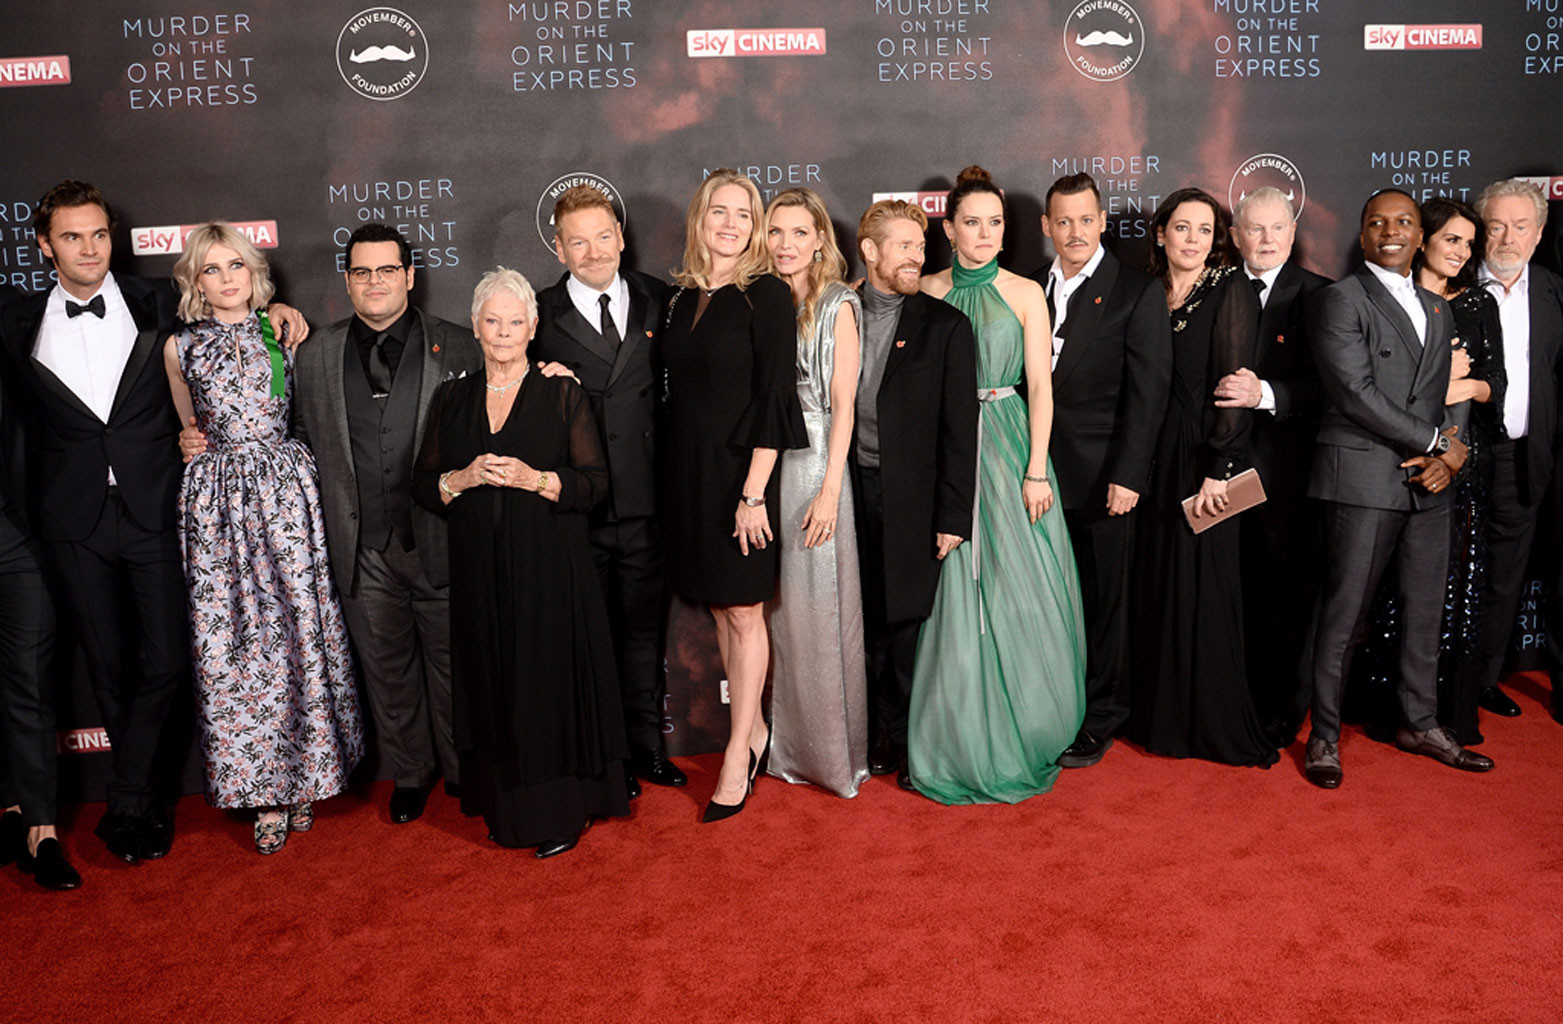 Johnny Depp, Cast, Murder on the Orient Express Premiere